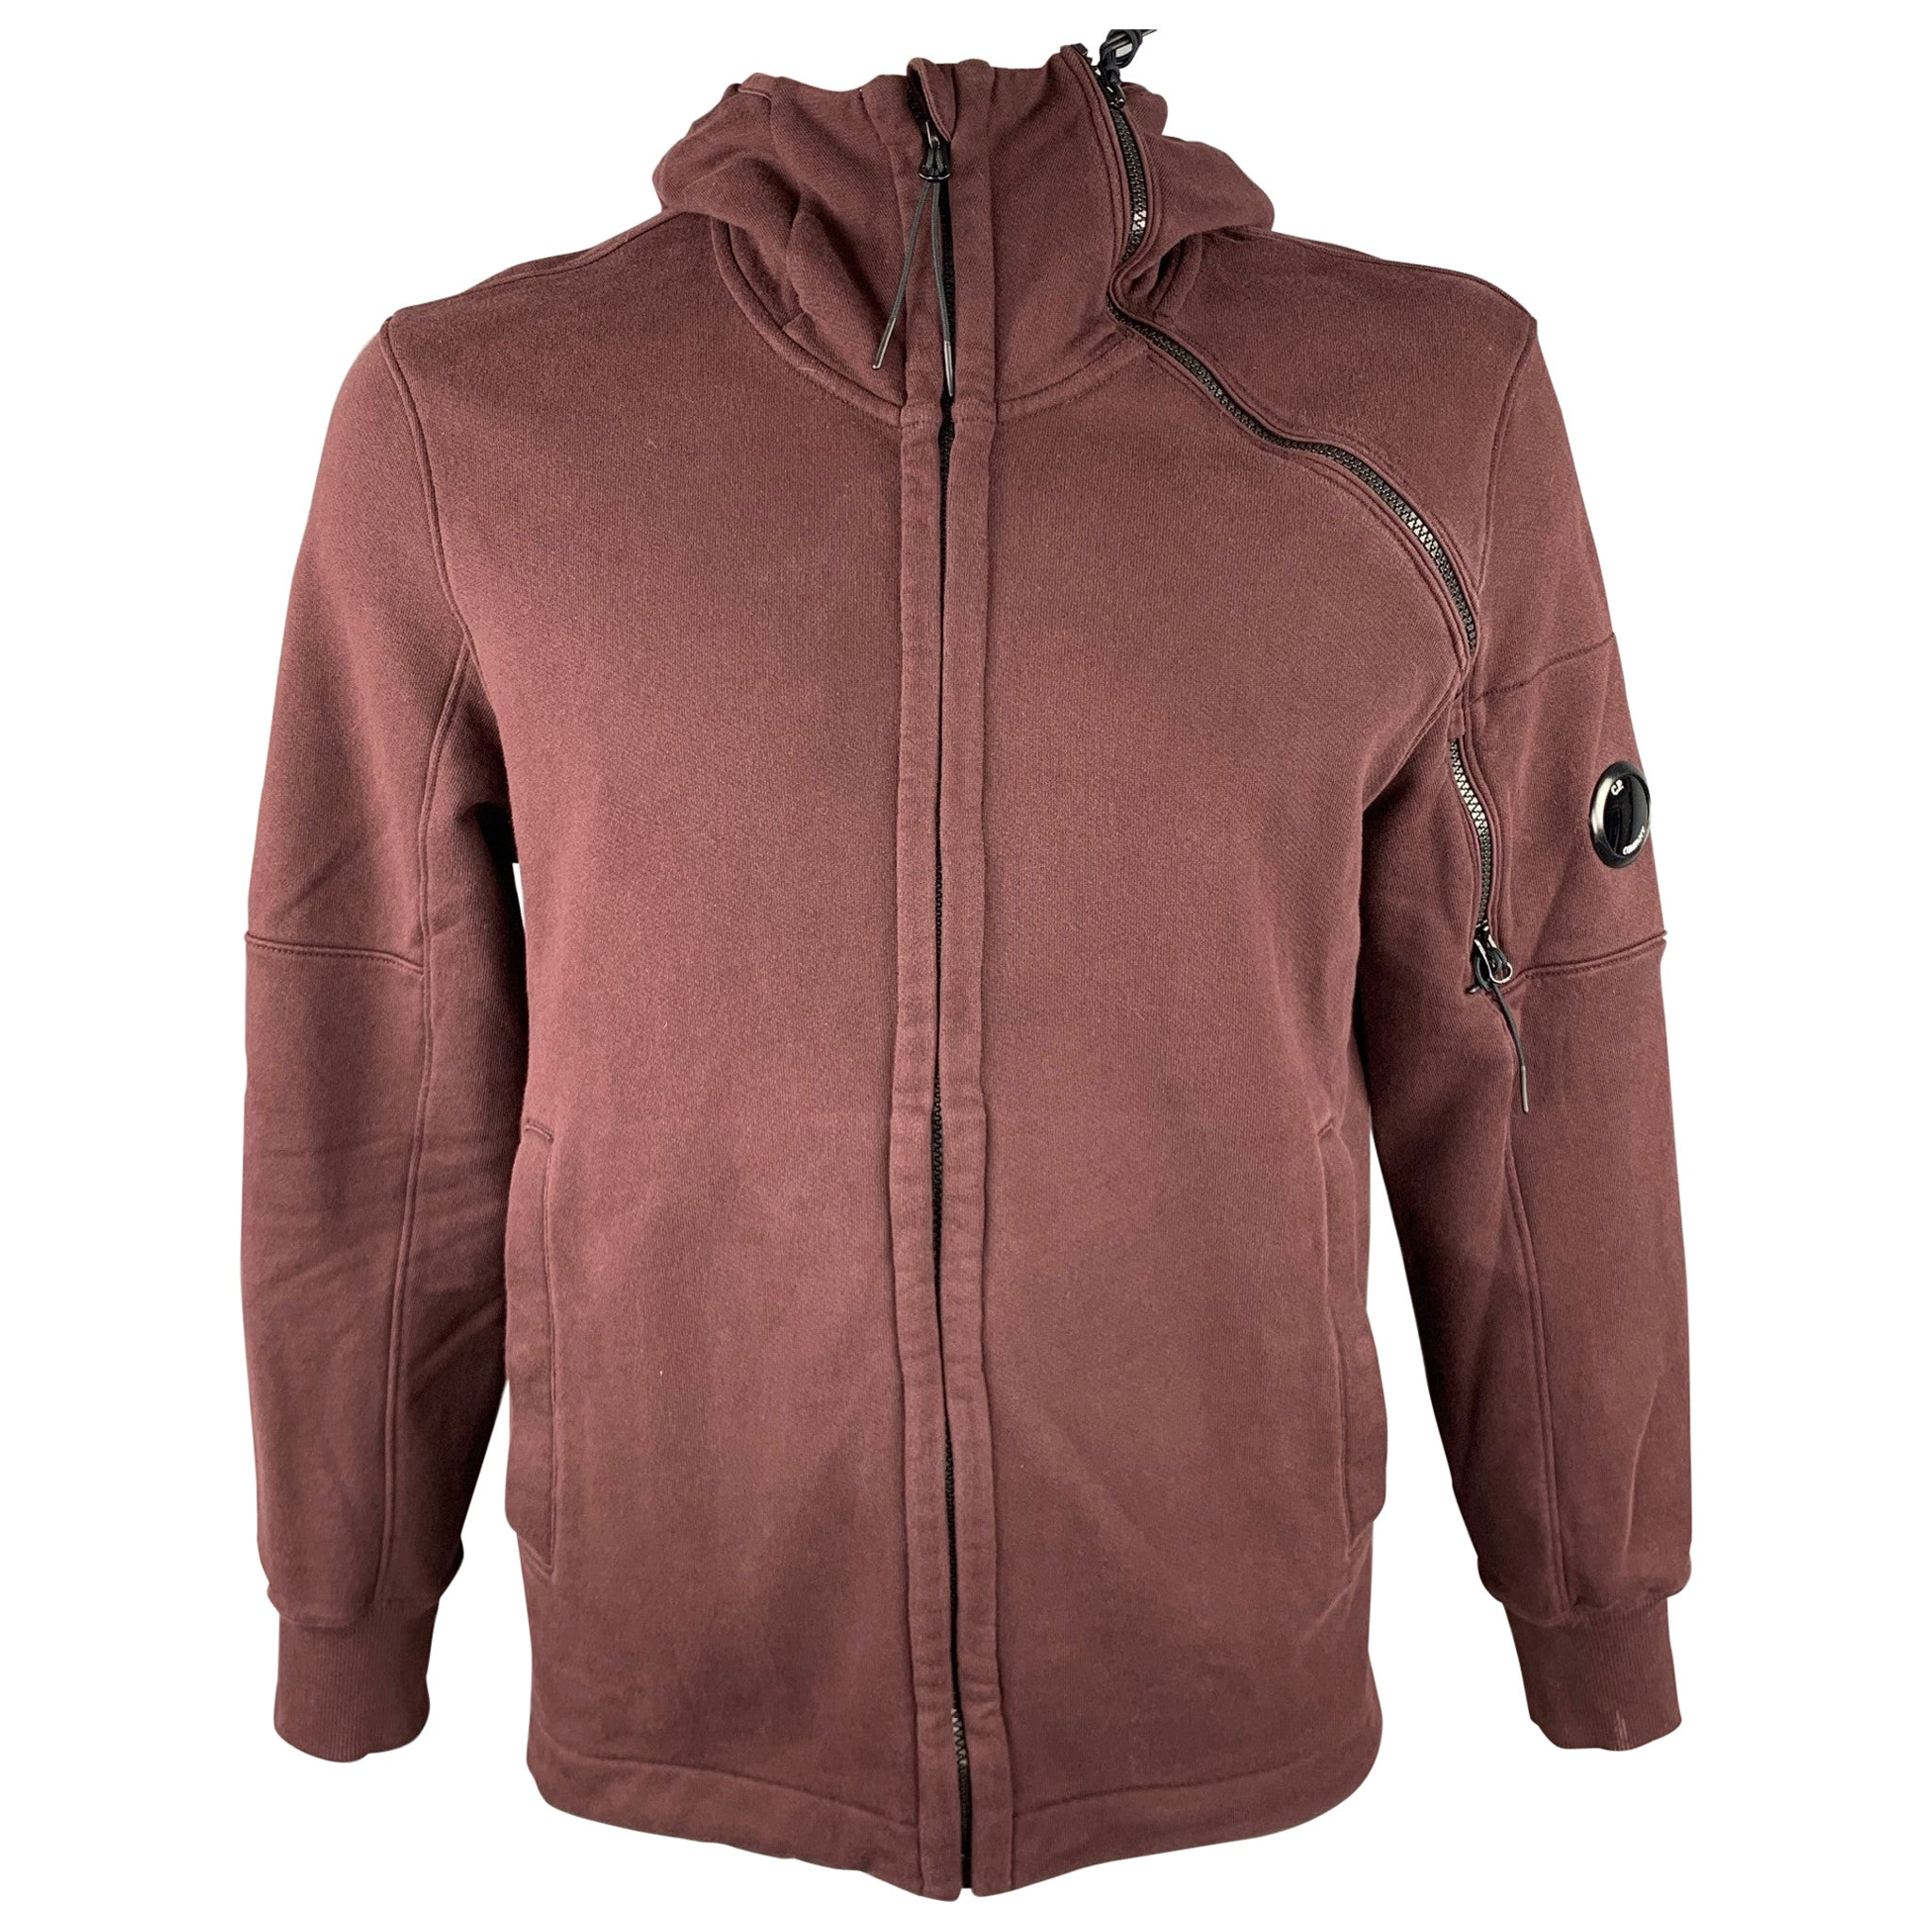 CP COMPANY Size XL Dark Burgundy Cotton Lens Detail Hooded Jacket